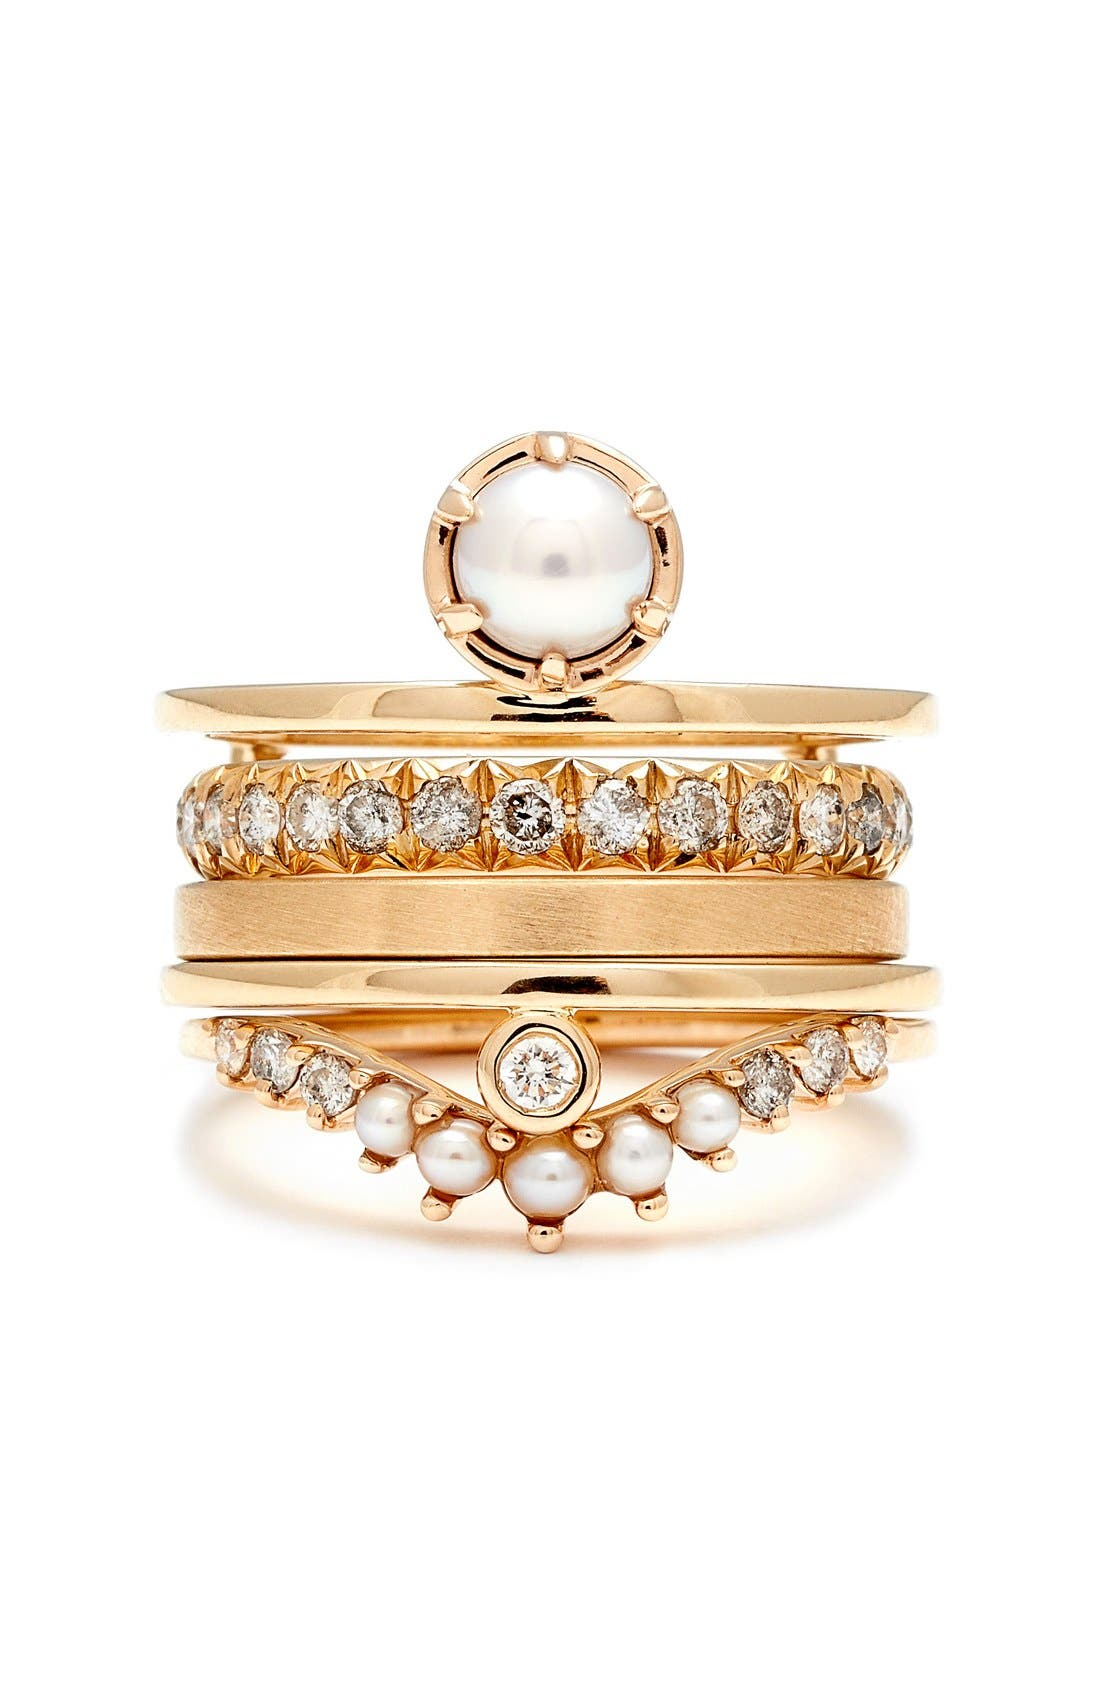 'Reverse Attelage' Double Band Pearl & Diamond Ring,                             Alternate thumbnail 3, color,                             YELLOW/ GOLD/ WHITE